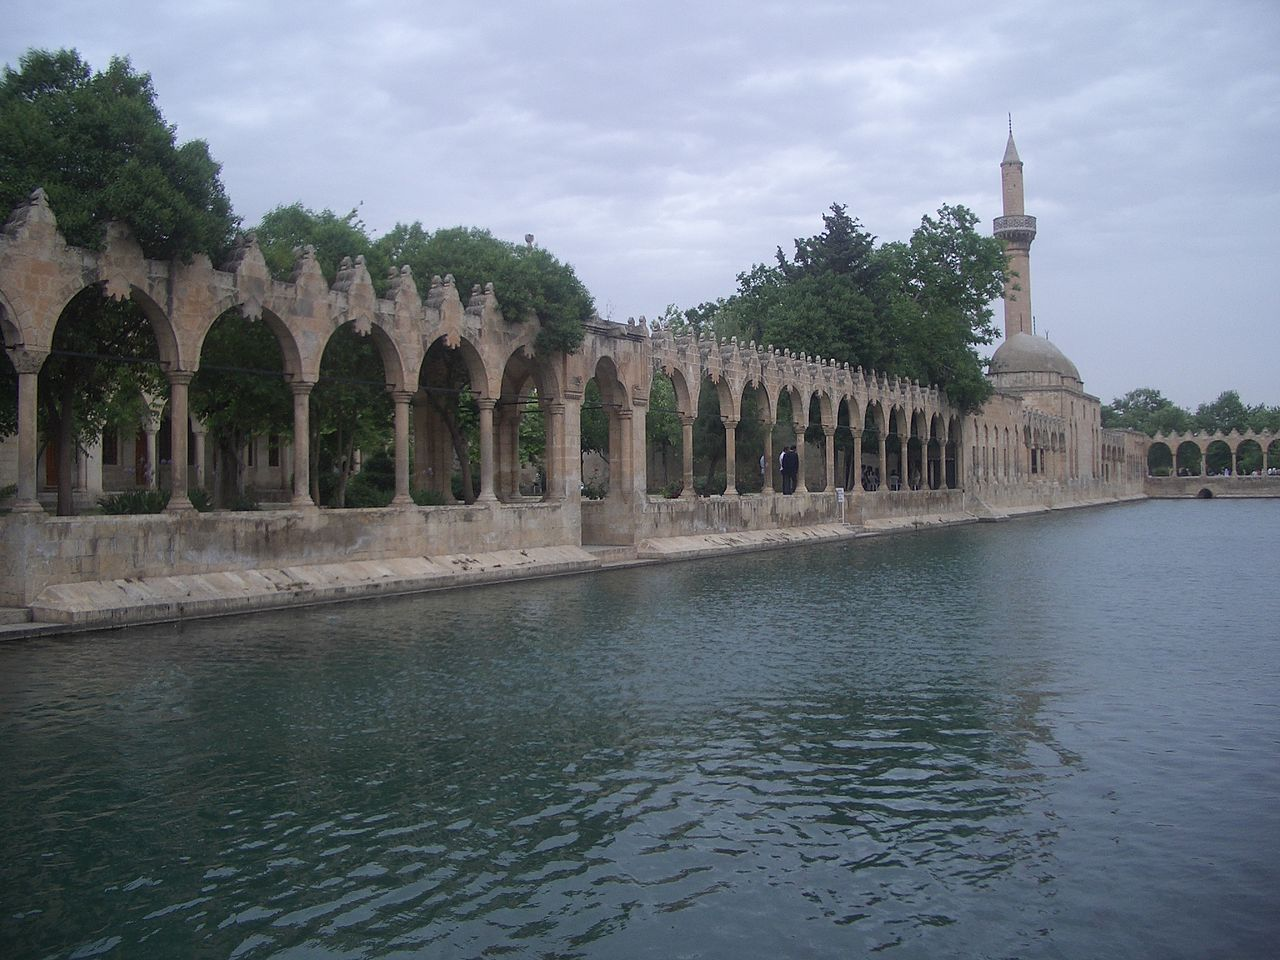 The holy pond (Balıklıgöl) in old city of Urfa, Turkey.